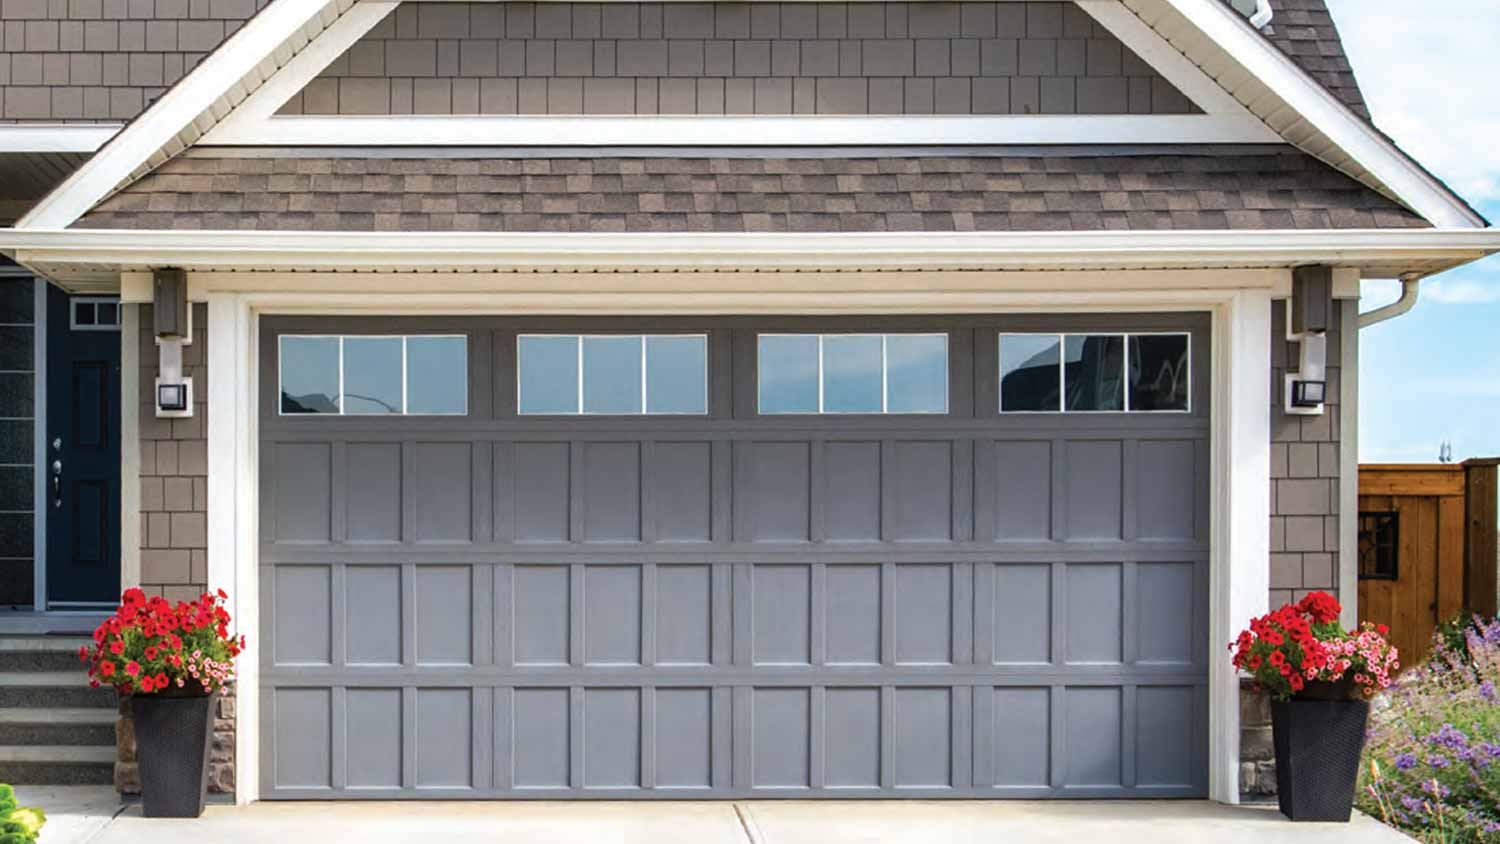 hight resolution of the model 9700 garage door adds the final touch to the design of your home it comes in a wide variety of styles finishes and options to make your home